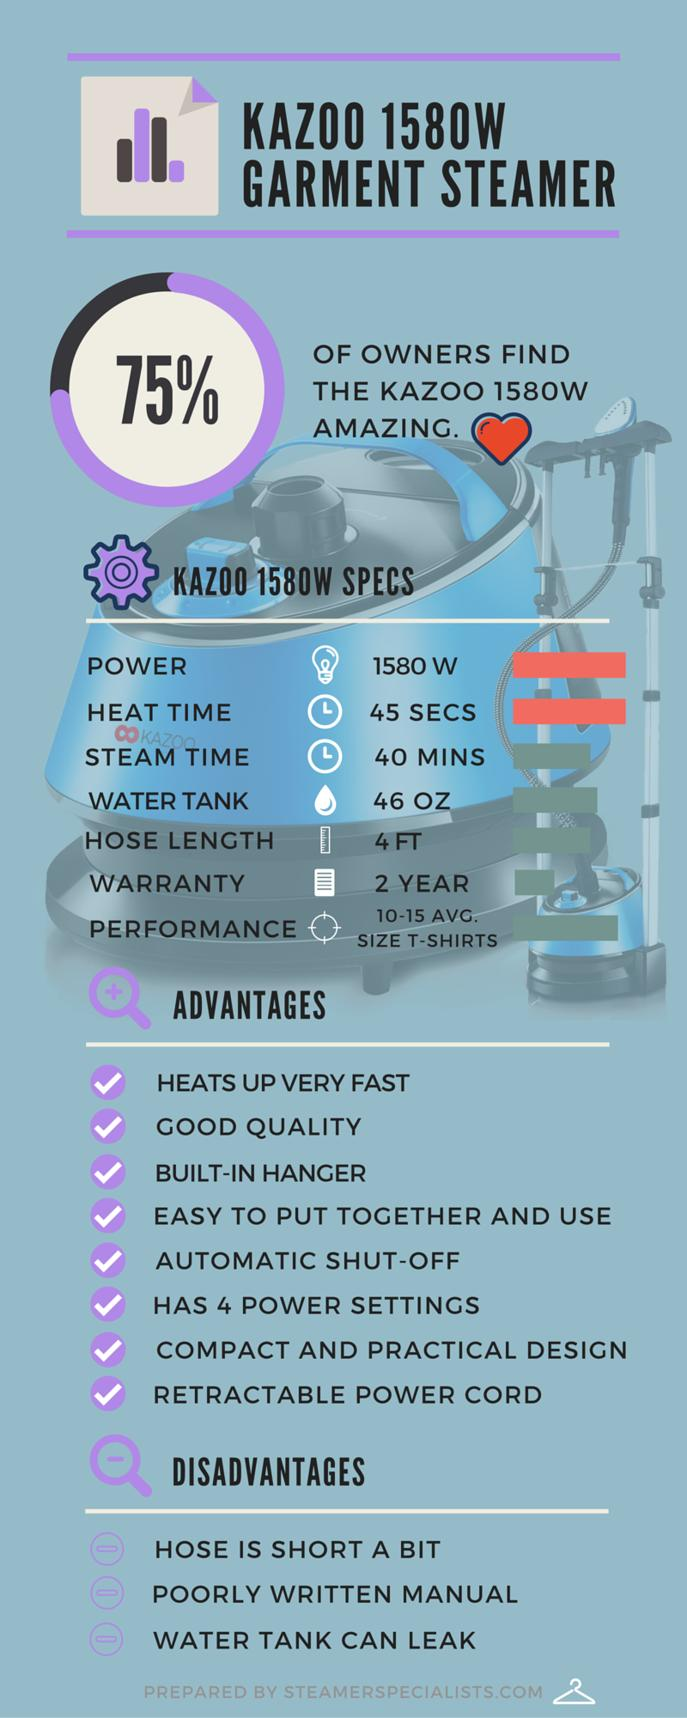 Kazoo 1580W 46 oz. Professional Garment Steamer Review Infographic